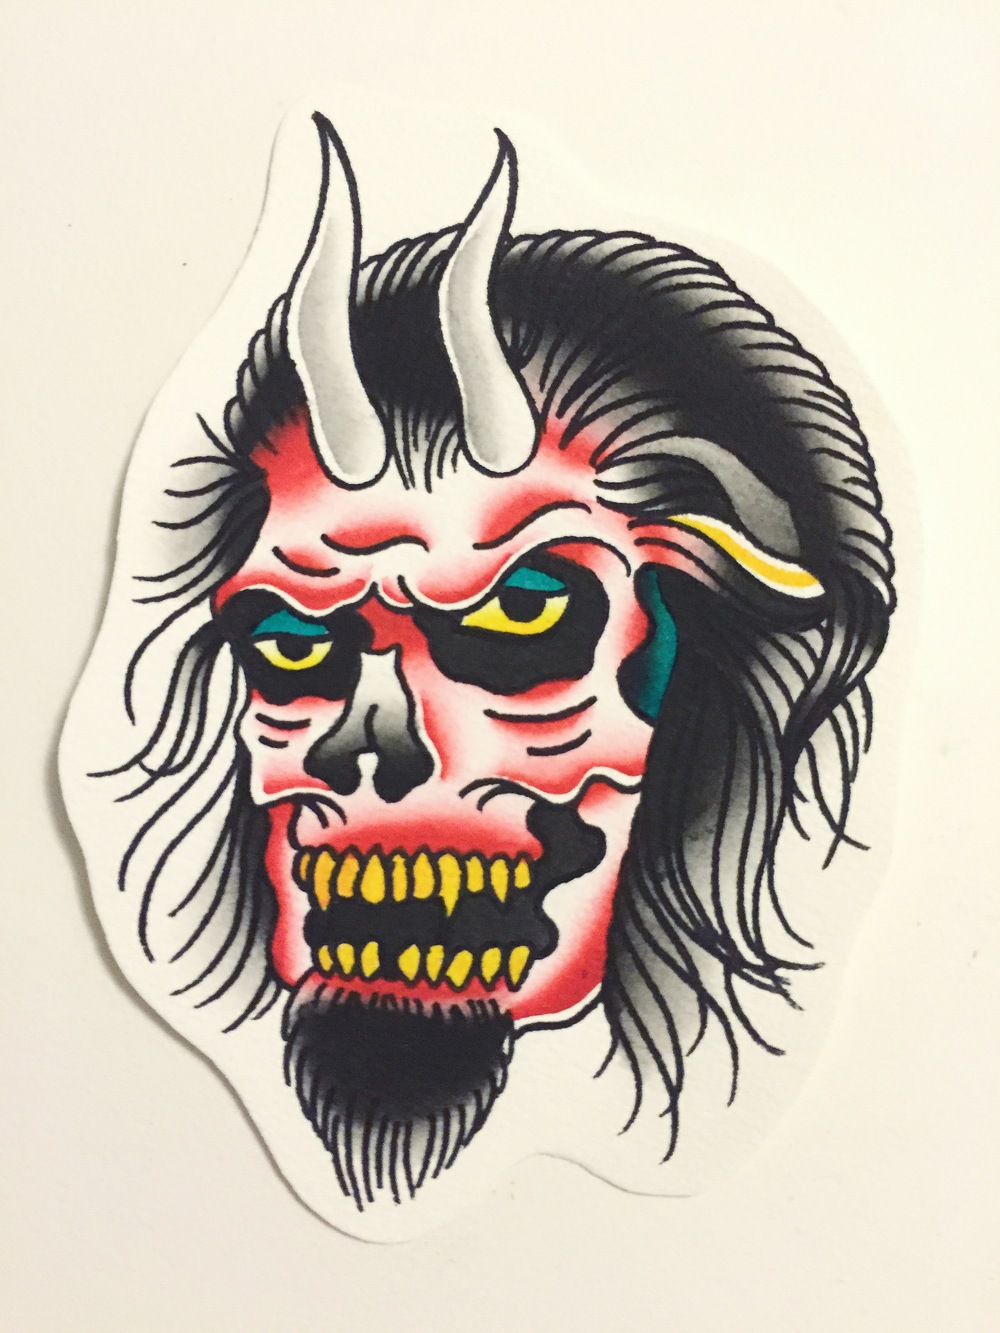 CREEPY DEVIL(painting comes with tattoo)